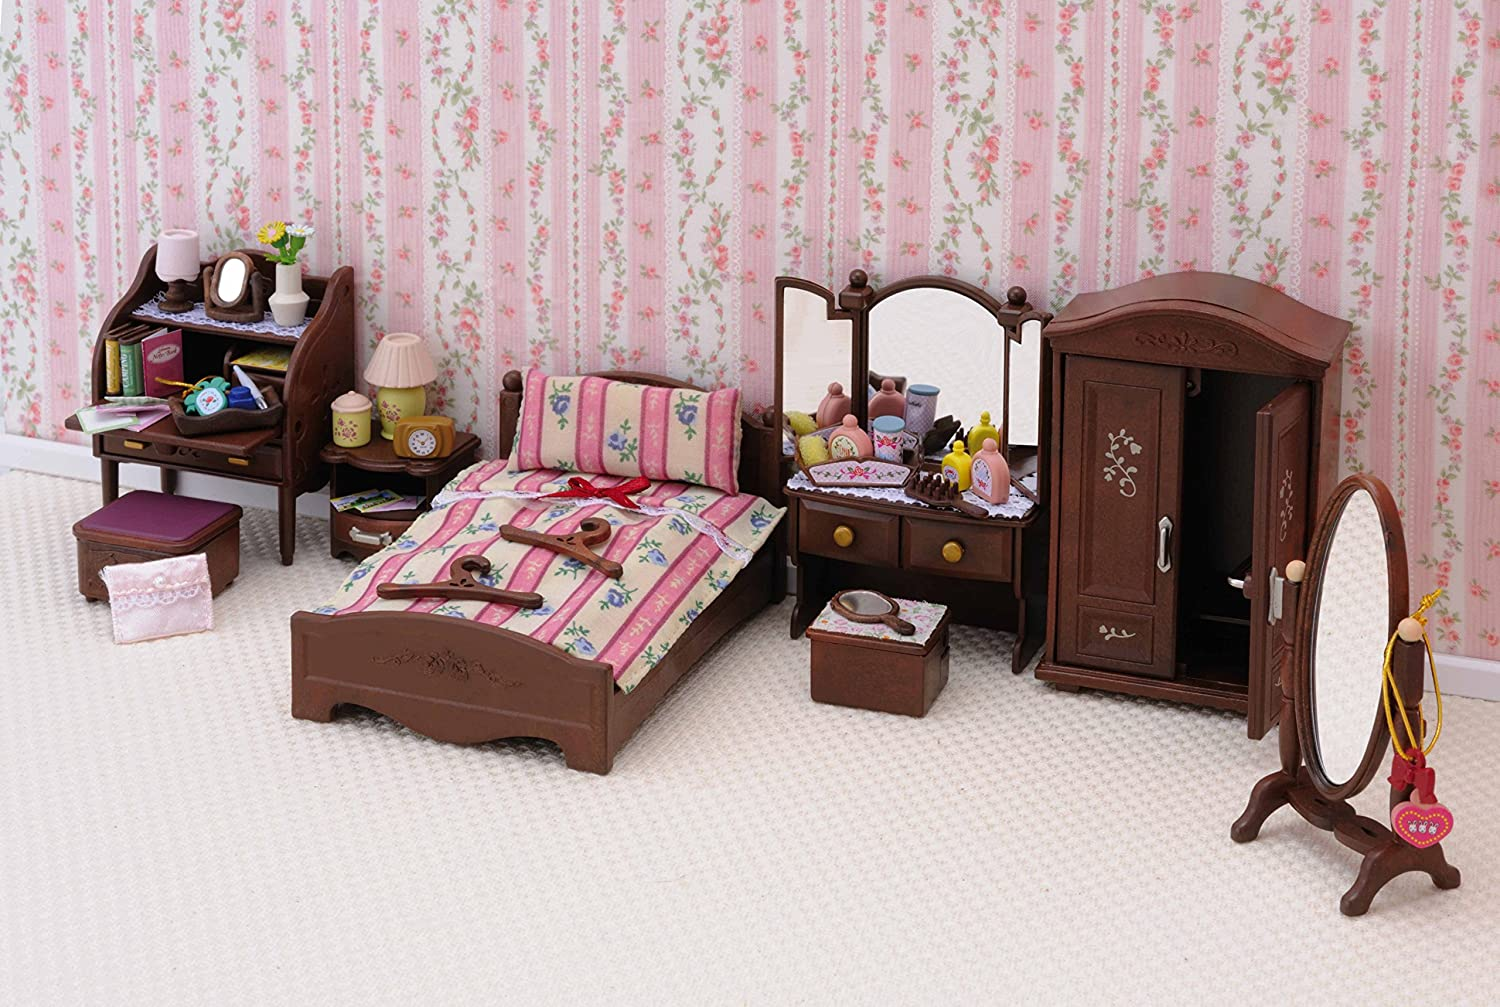 Sylvanian Families Guest Bedroom Set